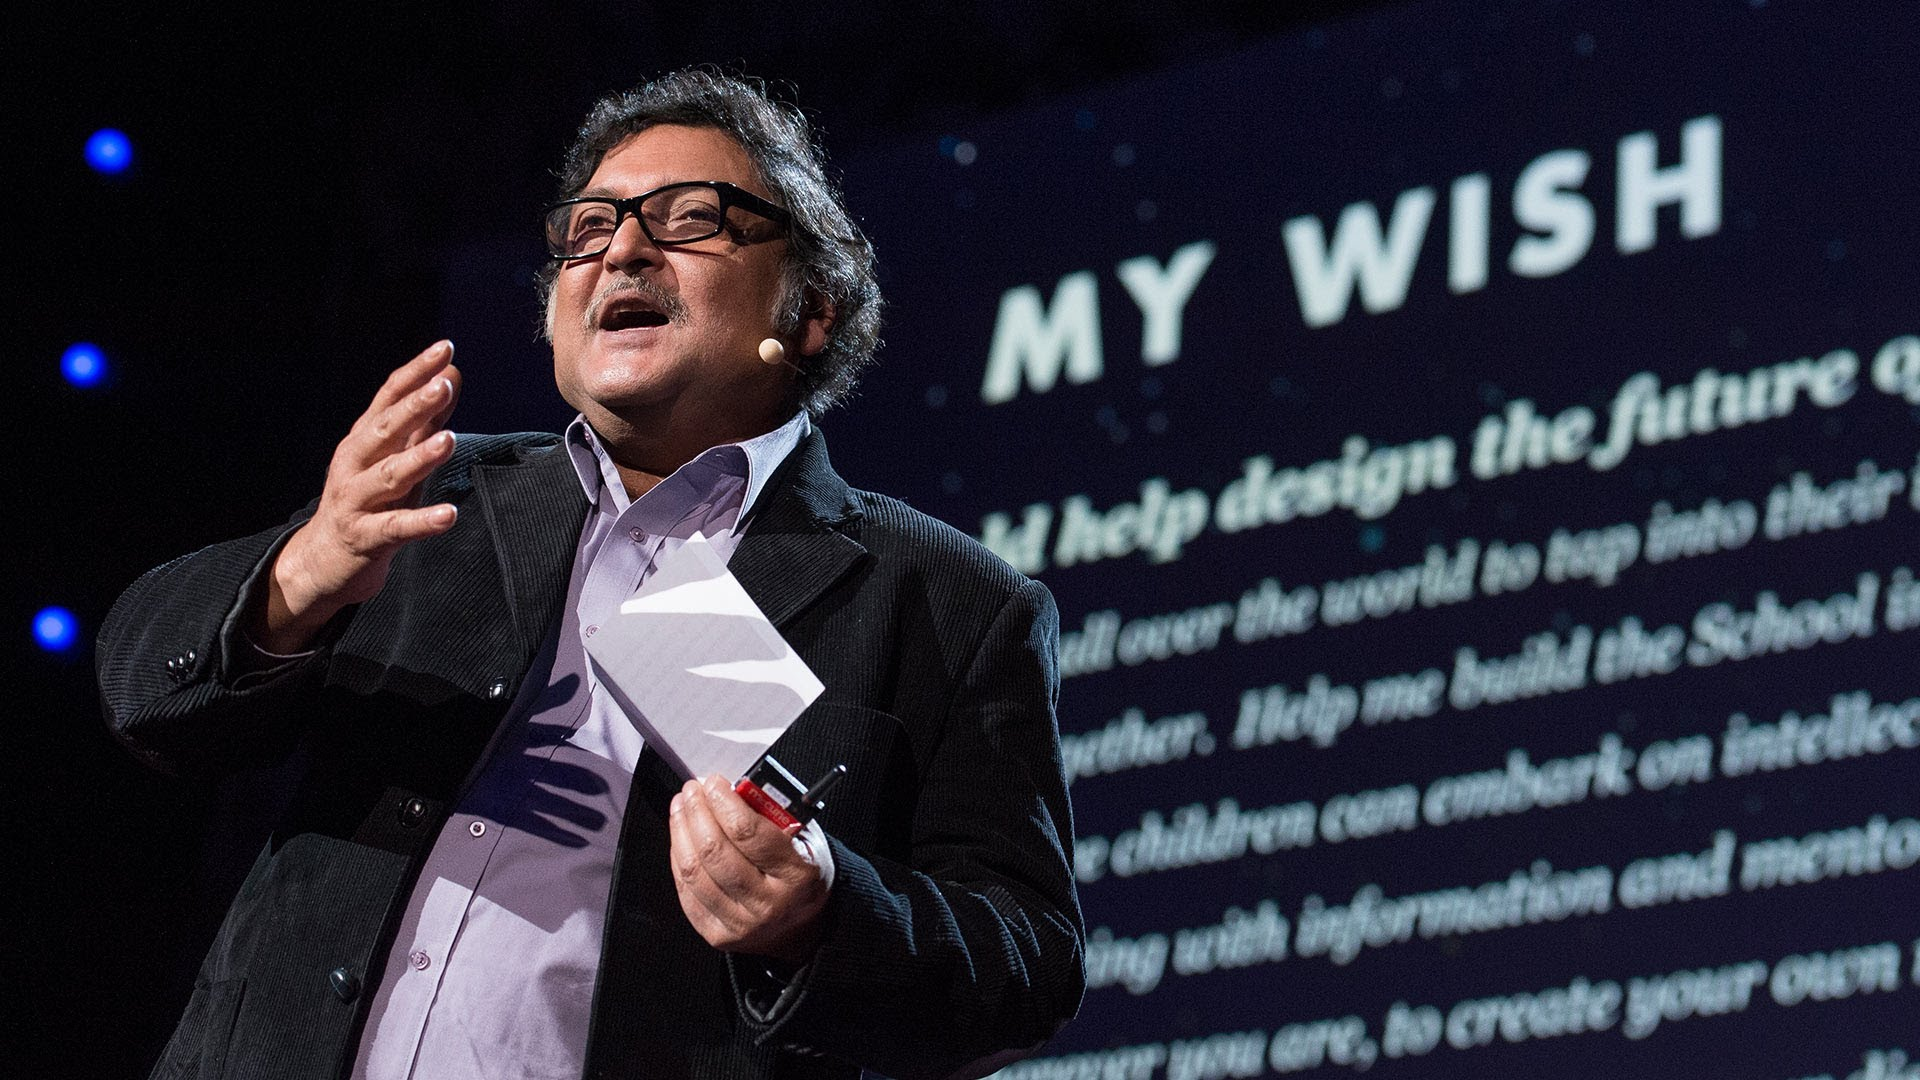 Sugata Mitra received $1 million to build the School in the Cloud in 2013 — and today his learning labs are open across India, as well as in the US and UK. Could you nominate the next Prize winner? Photo: James Duncan Davidson/TED